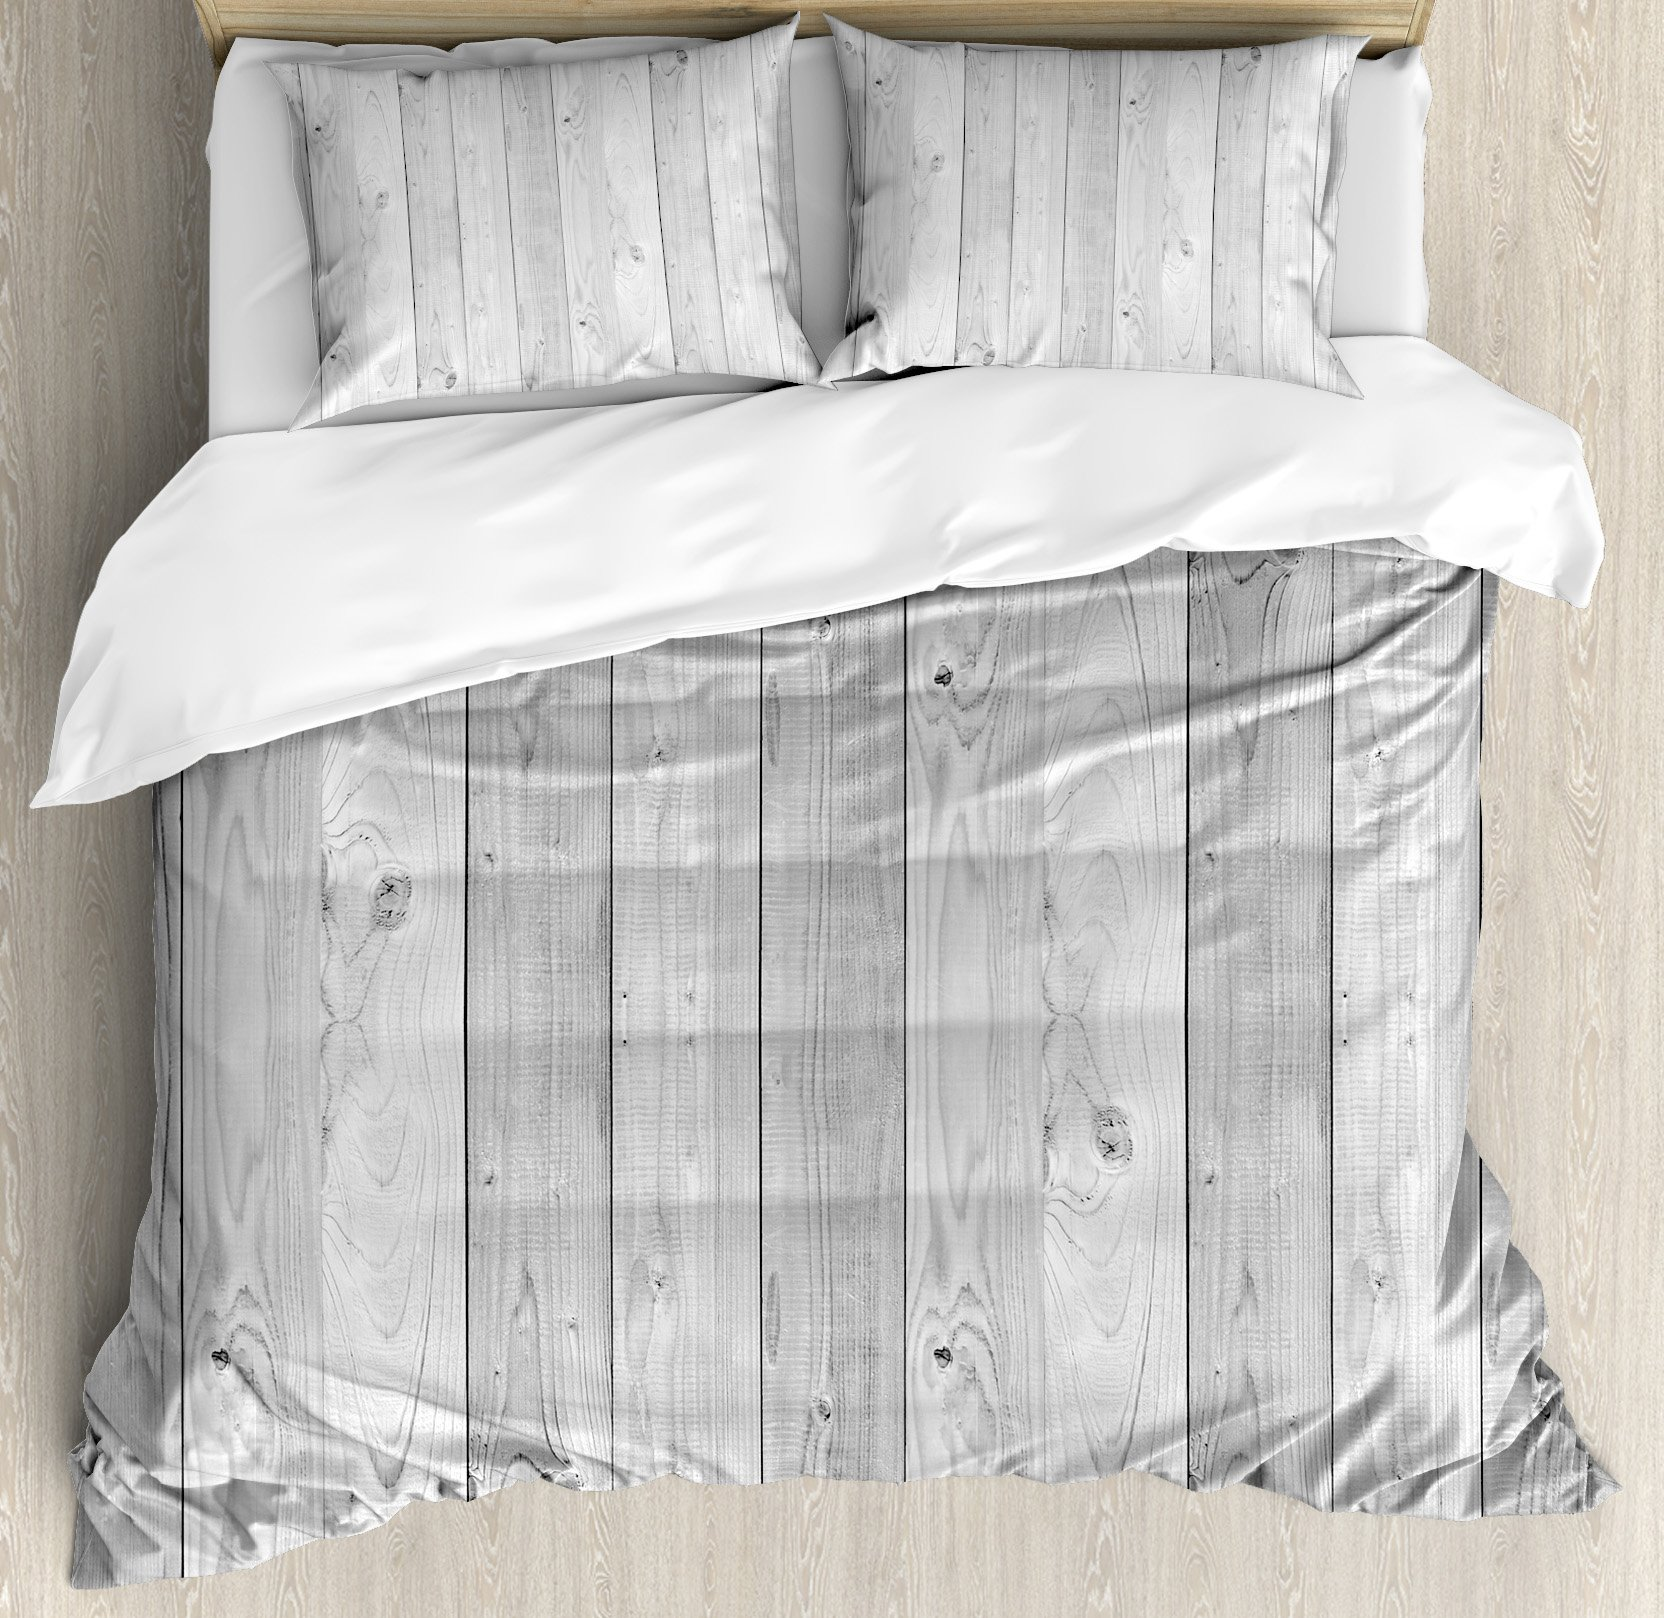 Grey King Size Duvet Cover Set by Ambesonne, Picture of Smooth Oak Wood Texture in Old Fashion Retro Style Horizontal Nature Design Print, Decorative 3 Piece Bedding Set with 2 Pillow Shams, Gray